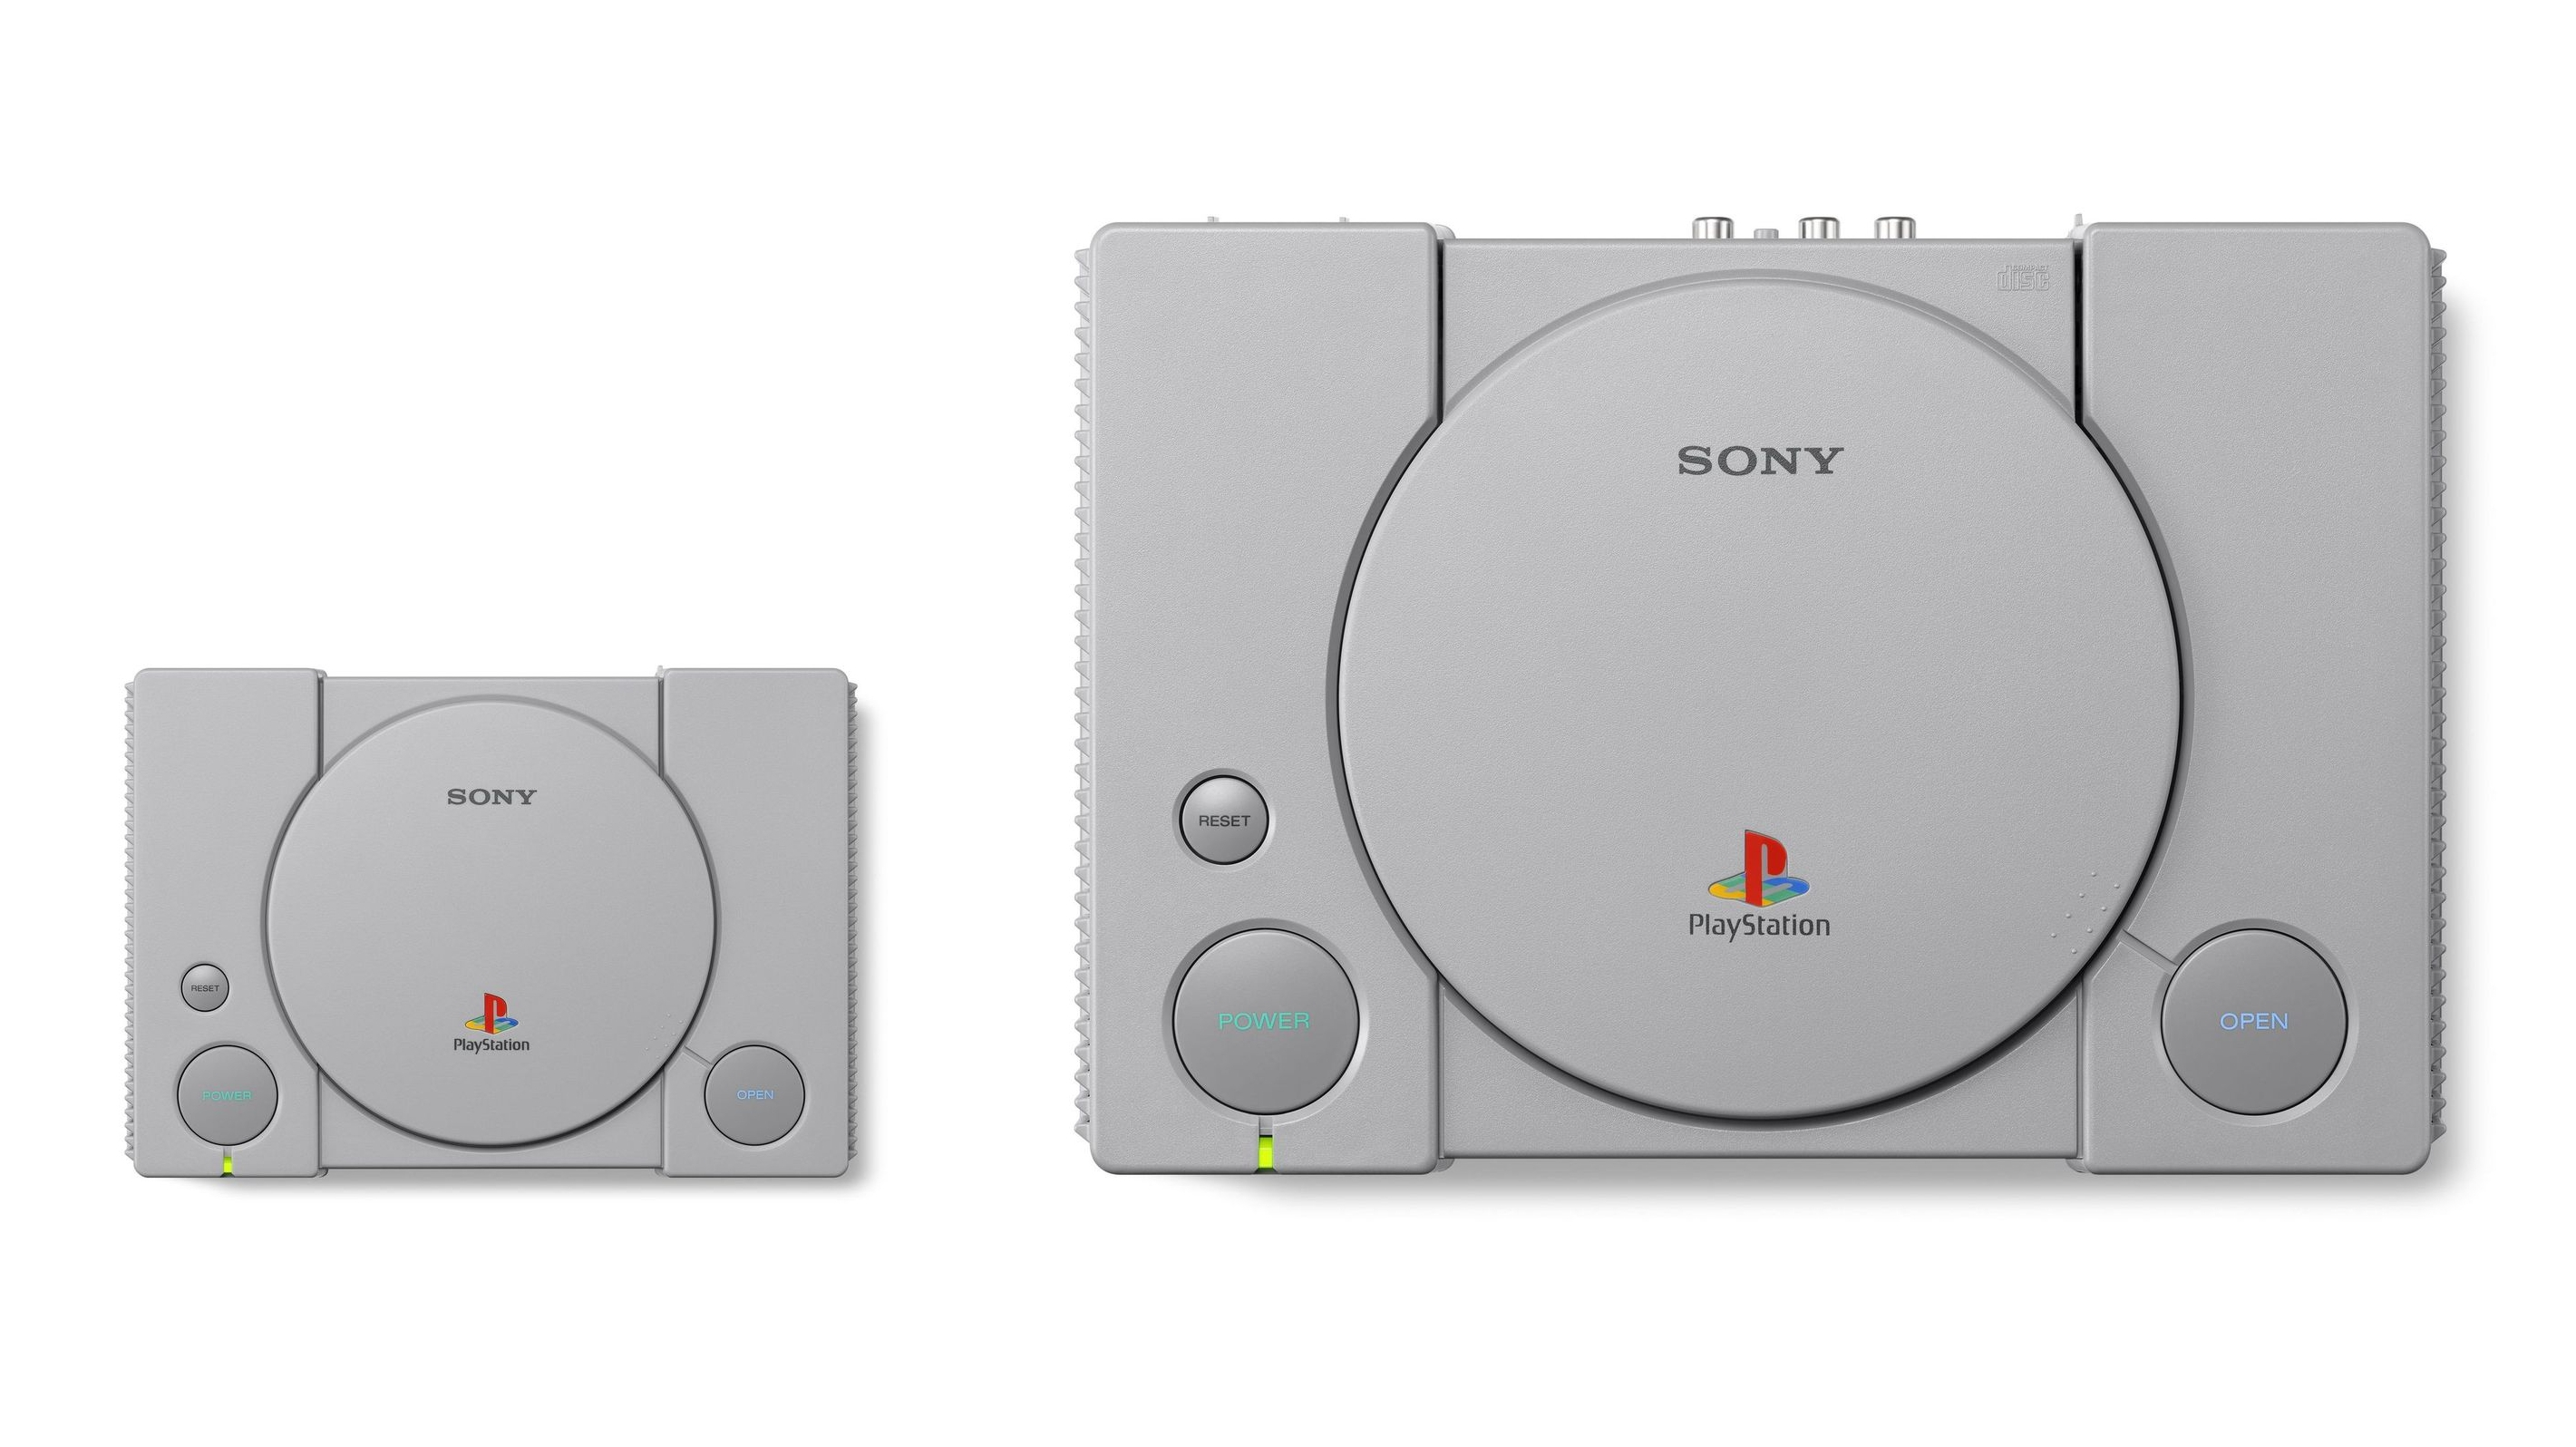 ps1 games download for ps1 classic